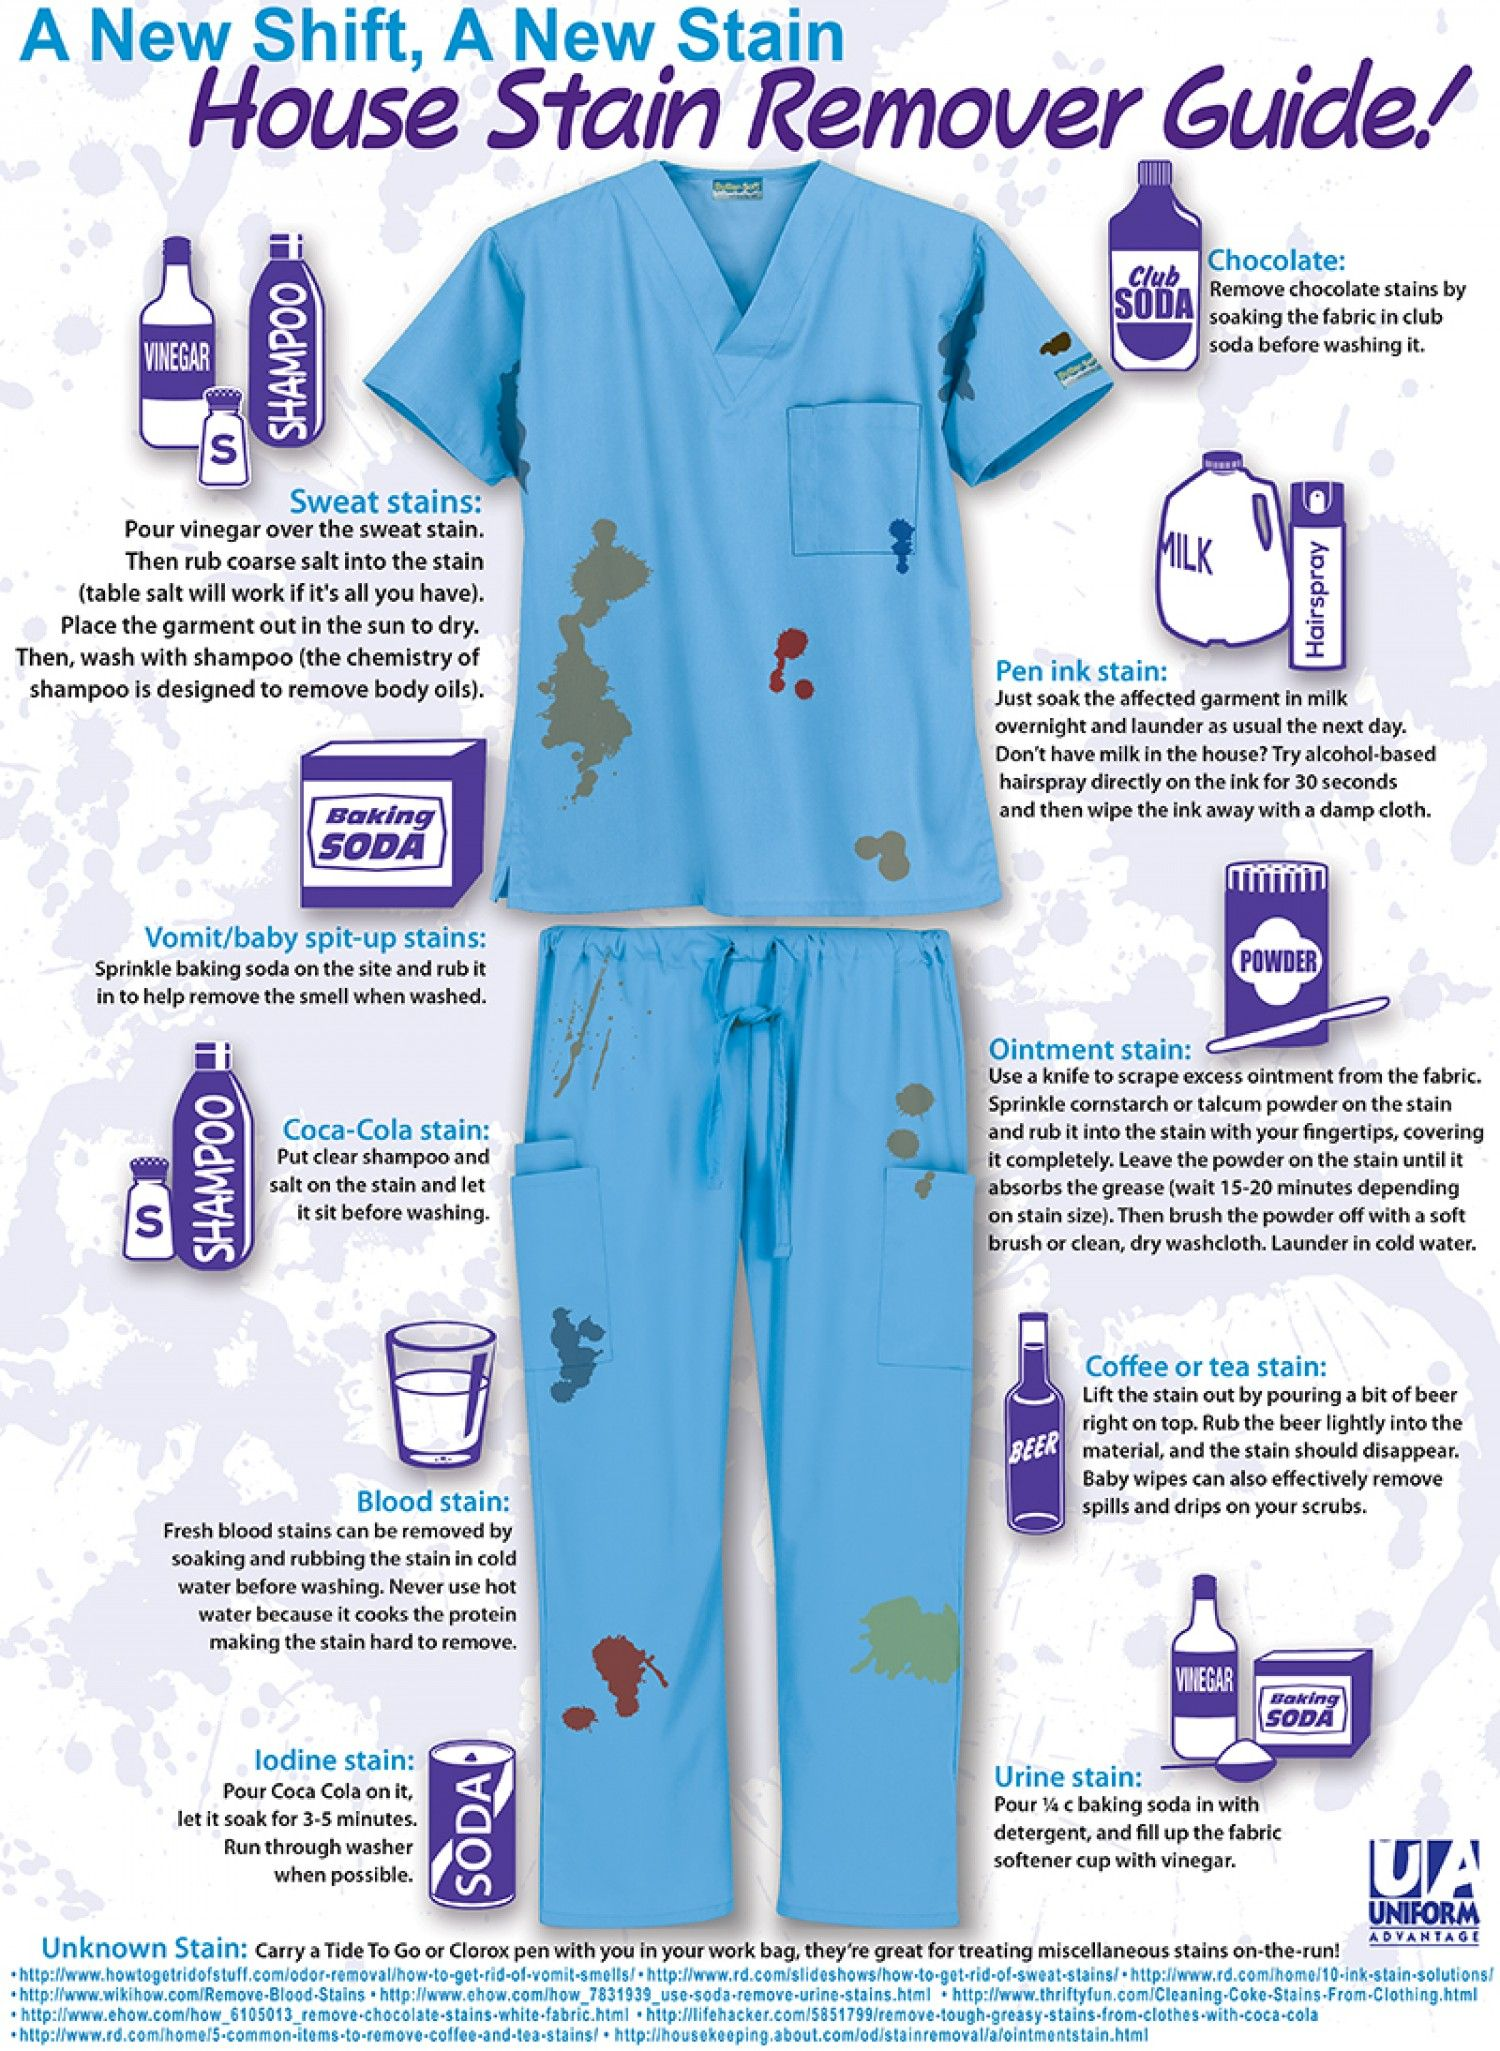 House Stain Remover Guide Infographic